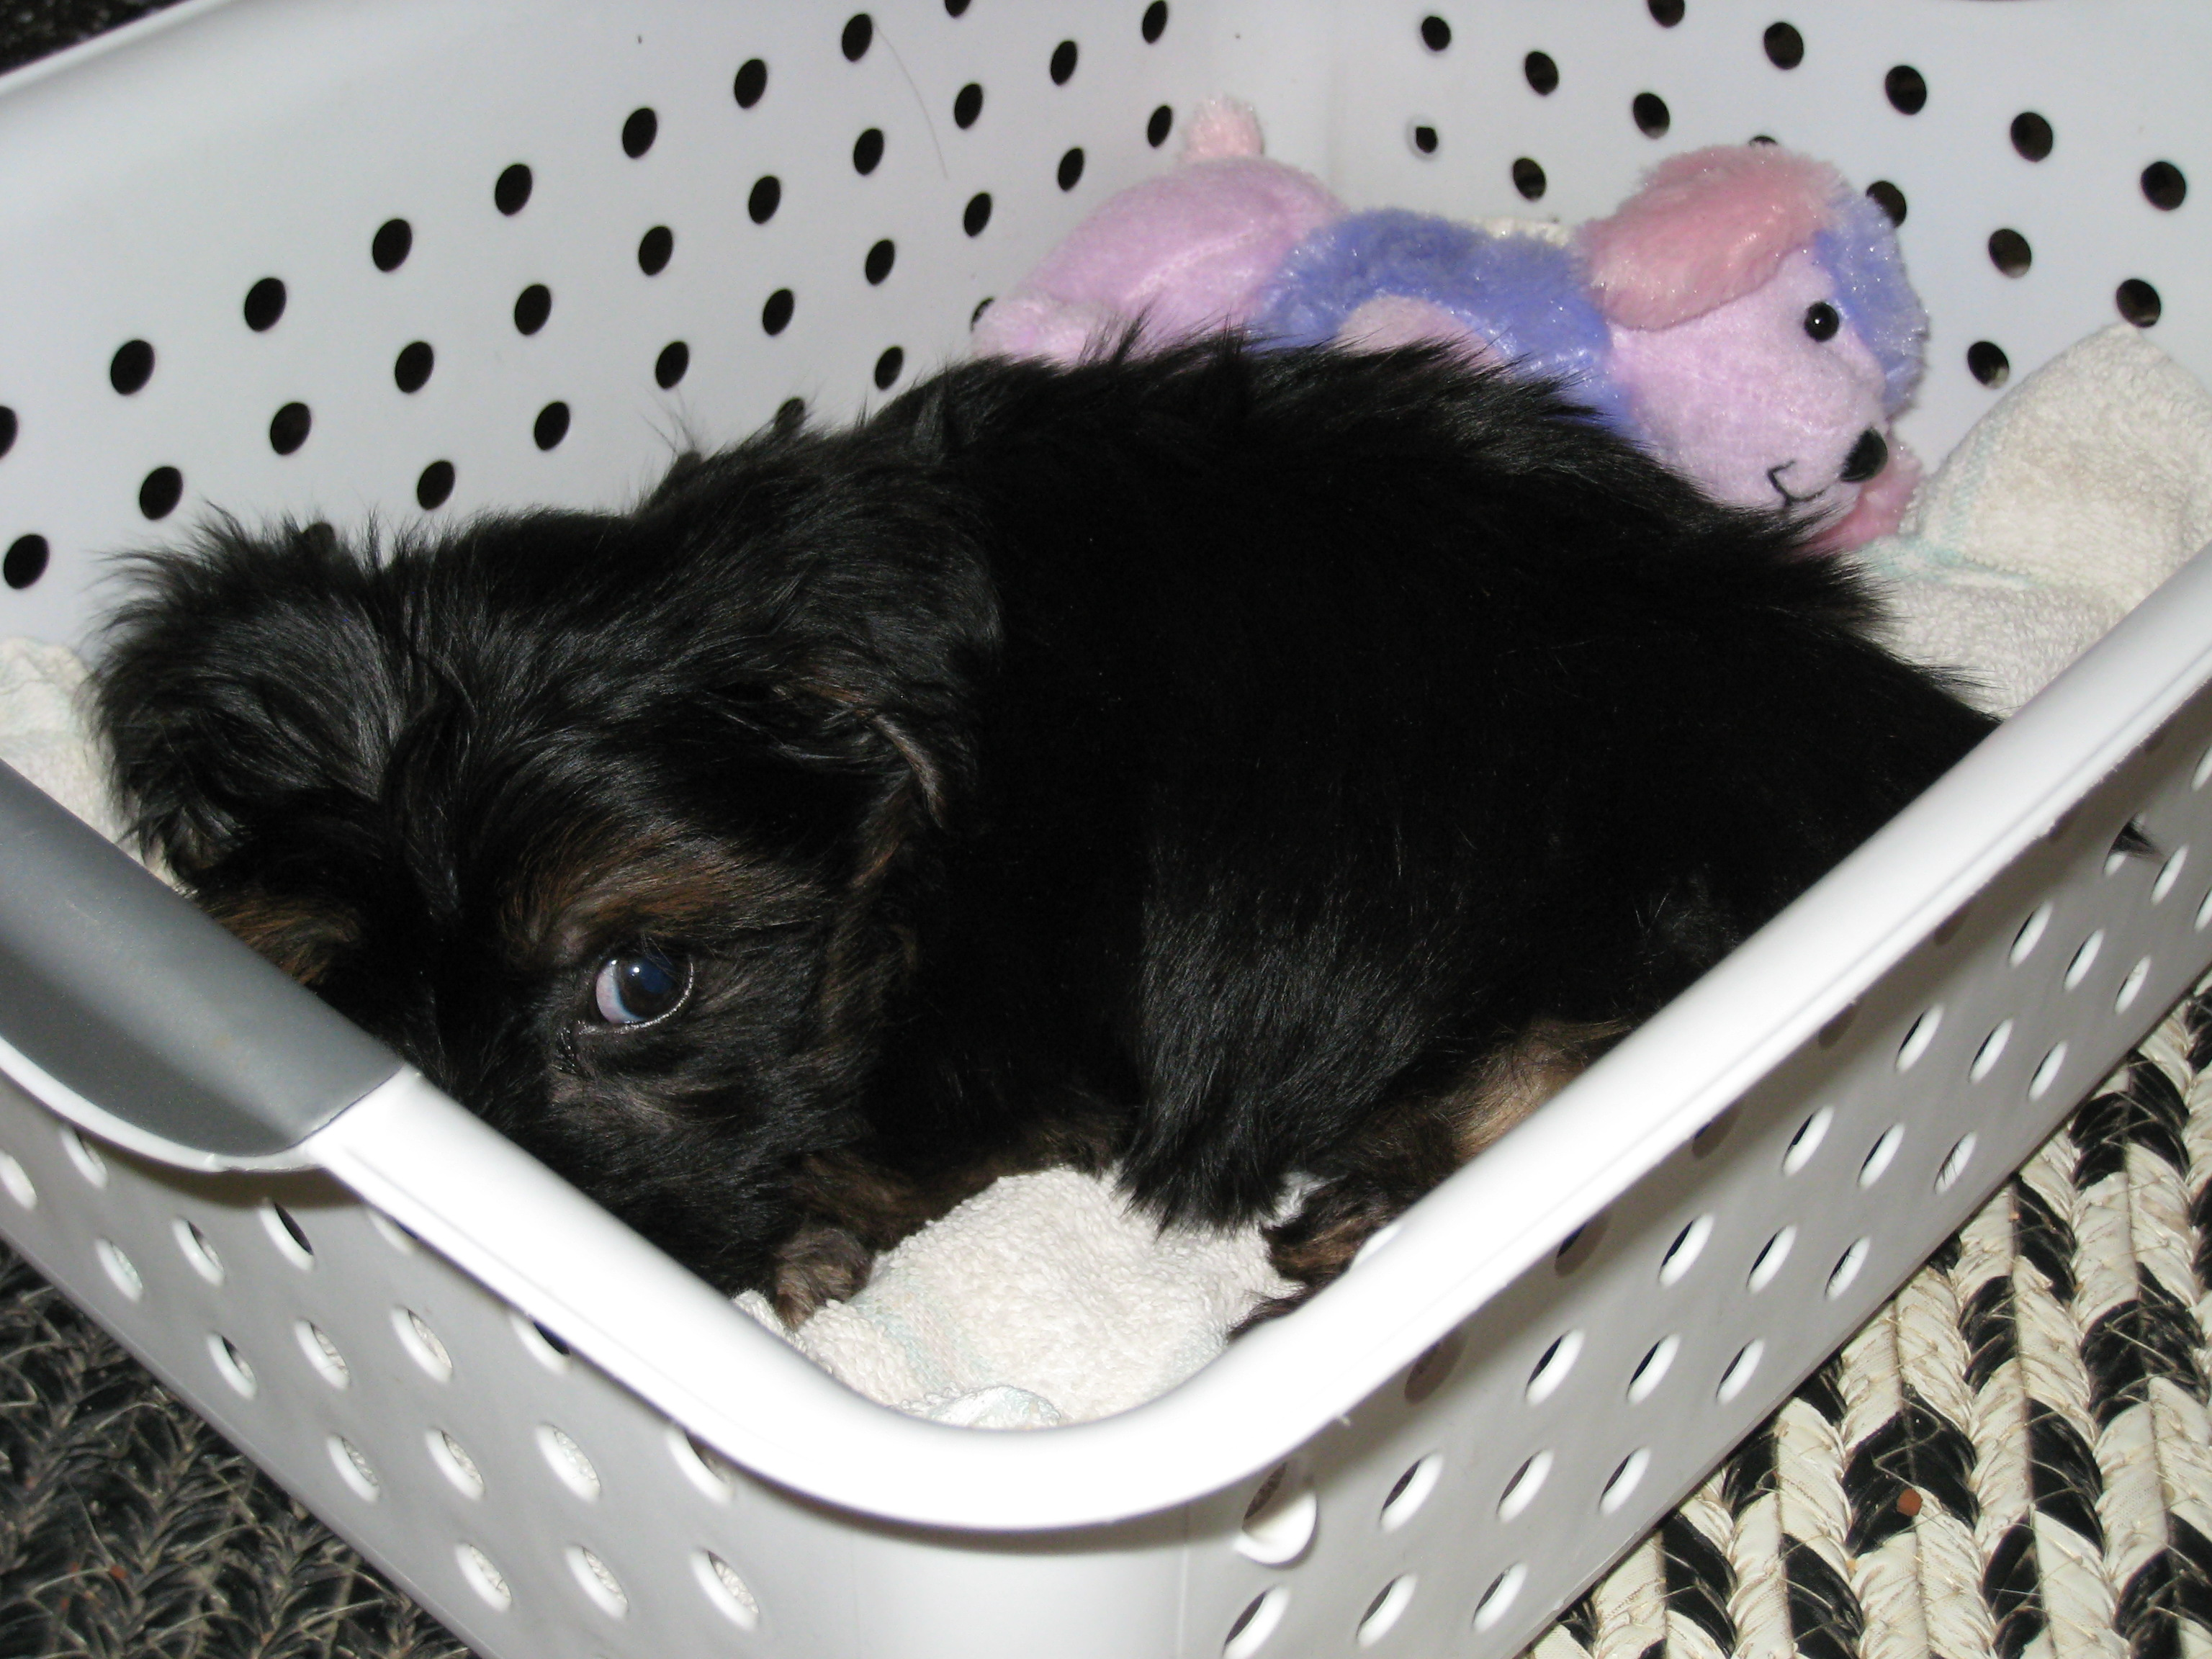 Puppy in a tiny basket